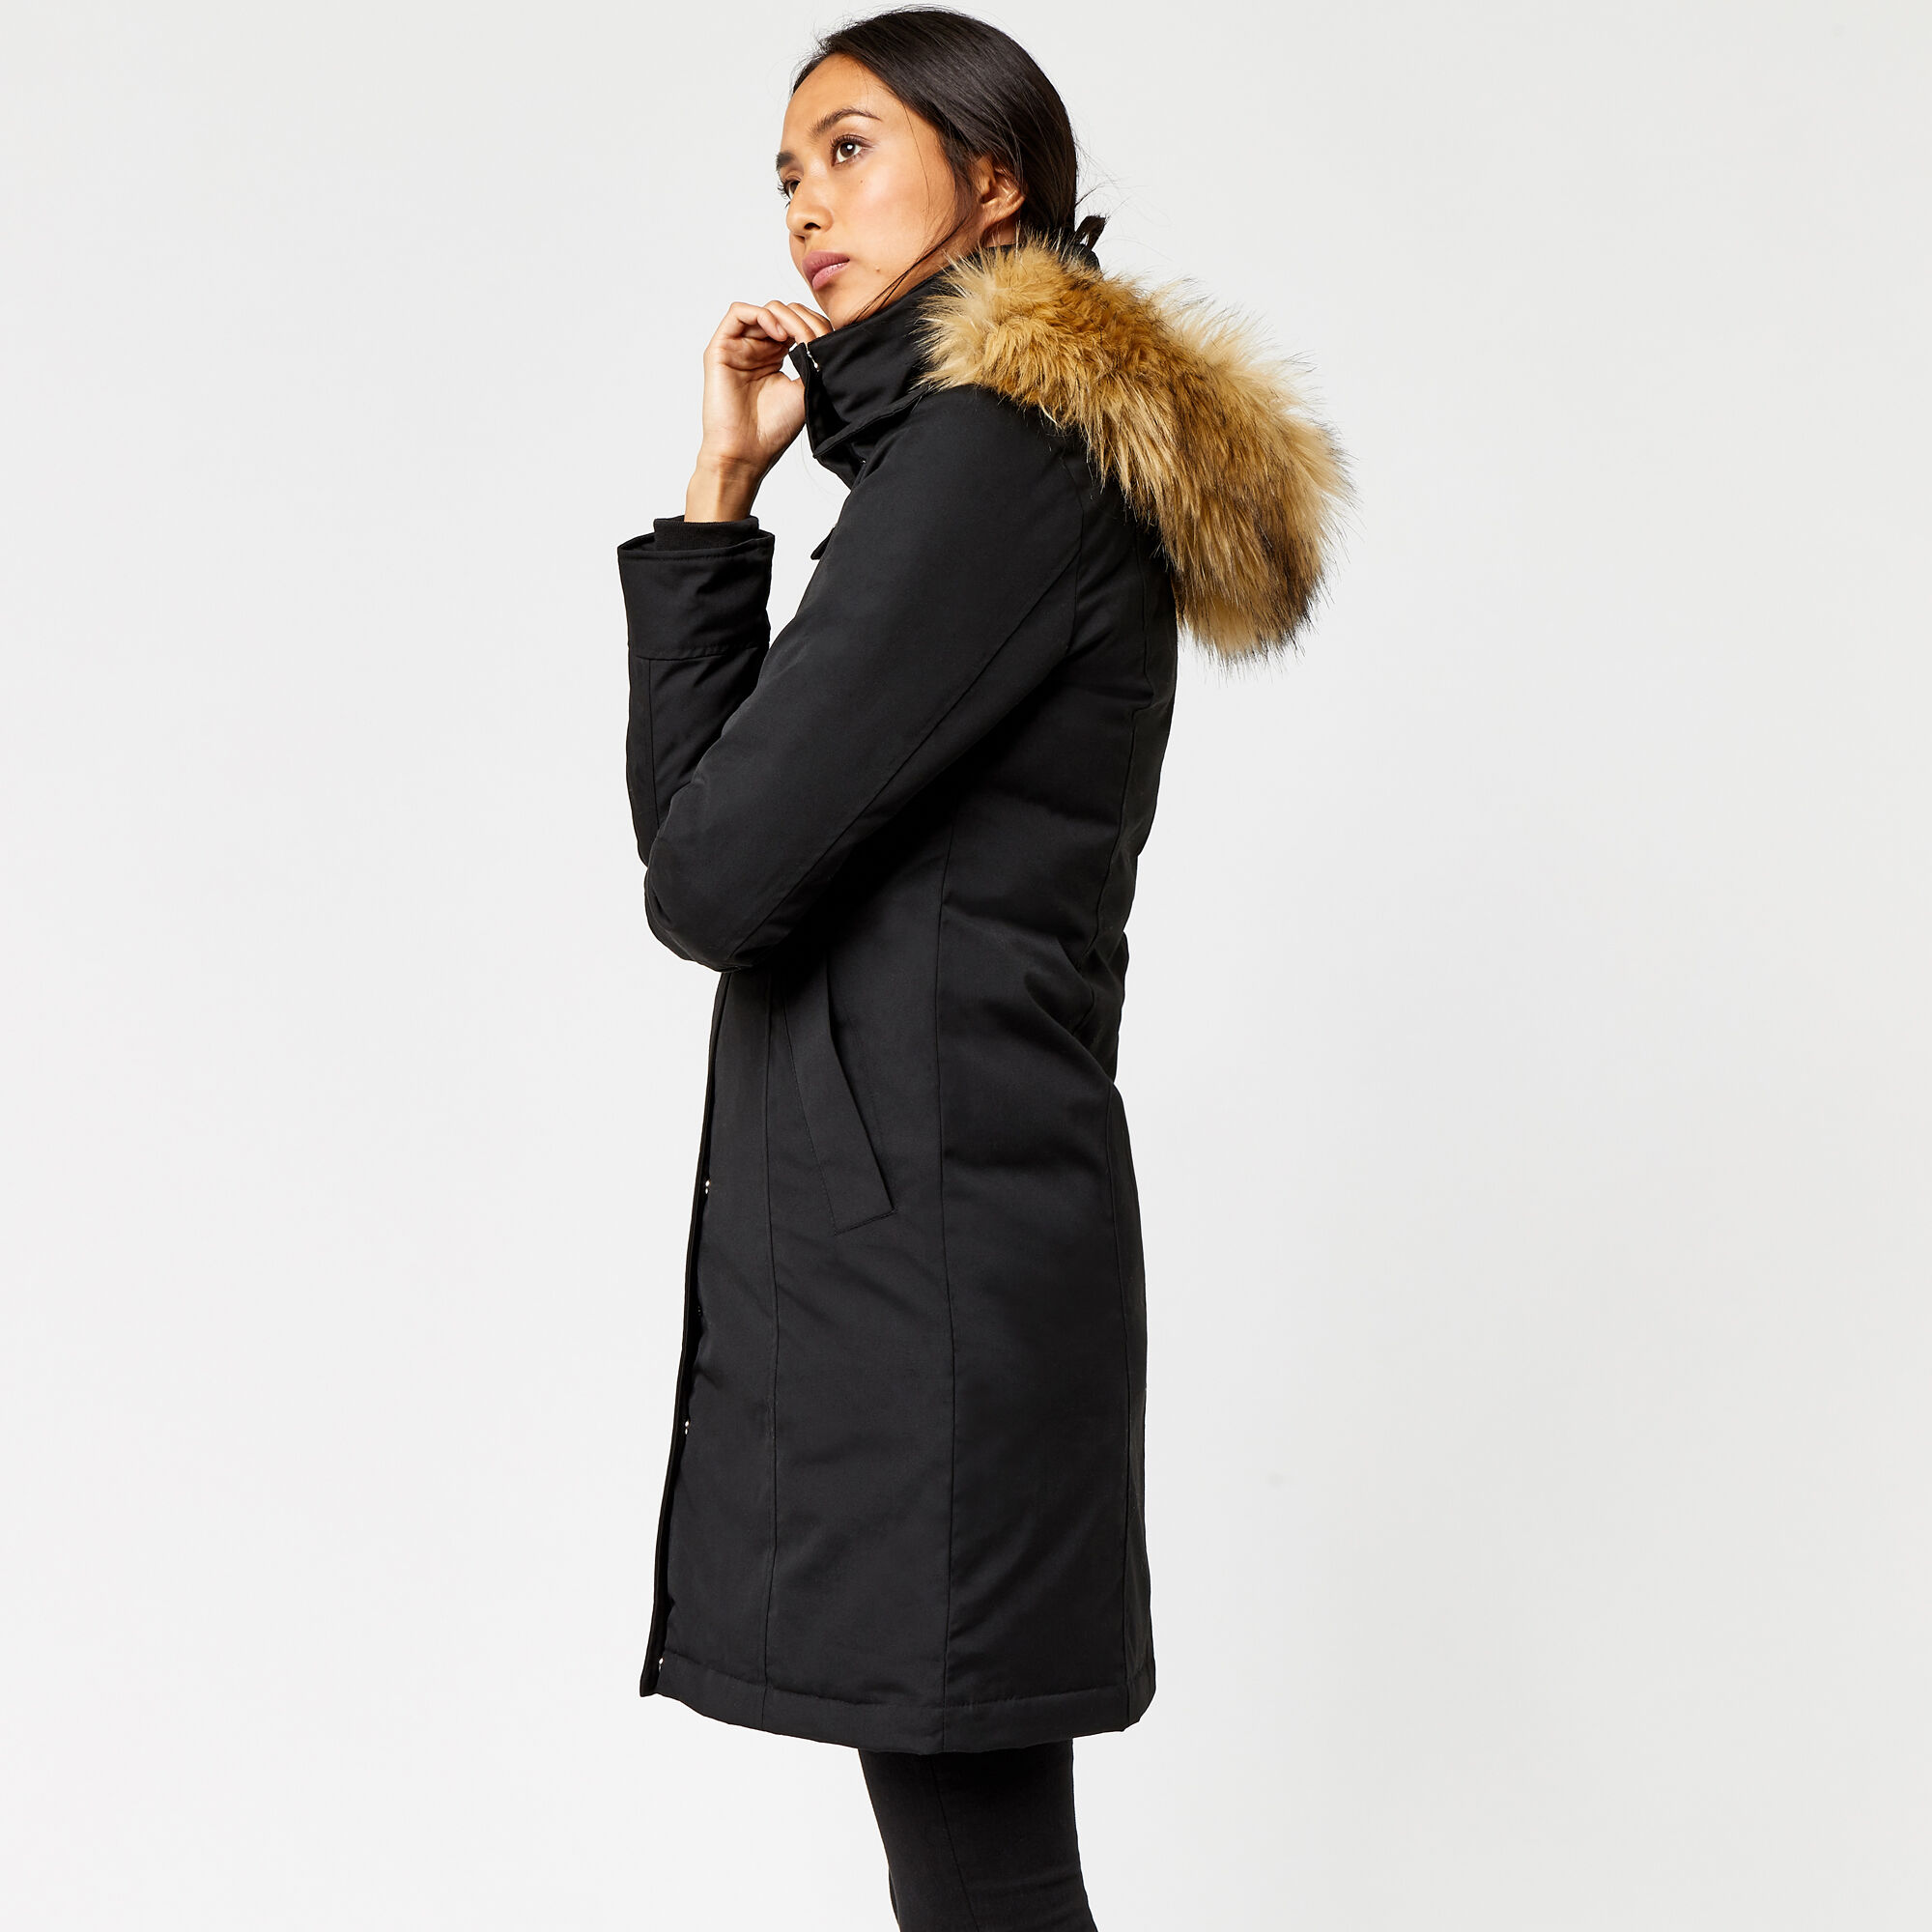 Warehouse, Clean Fitted Wadded Coat Black 1